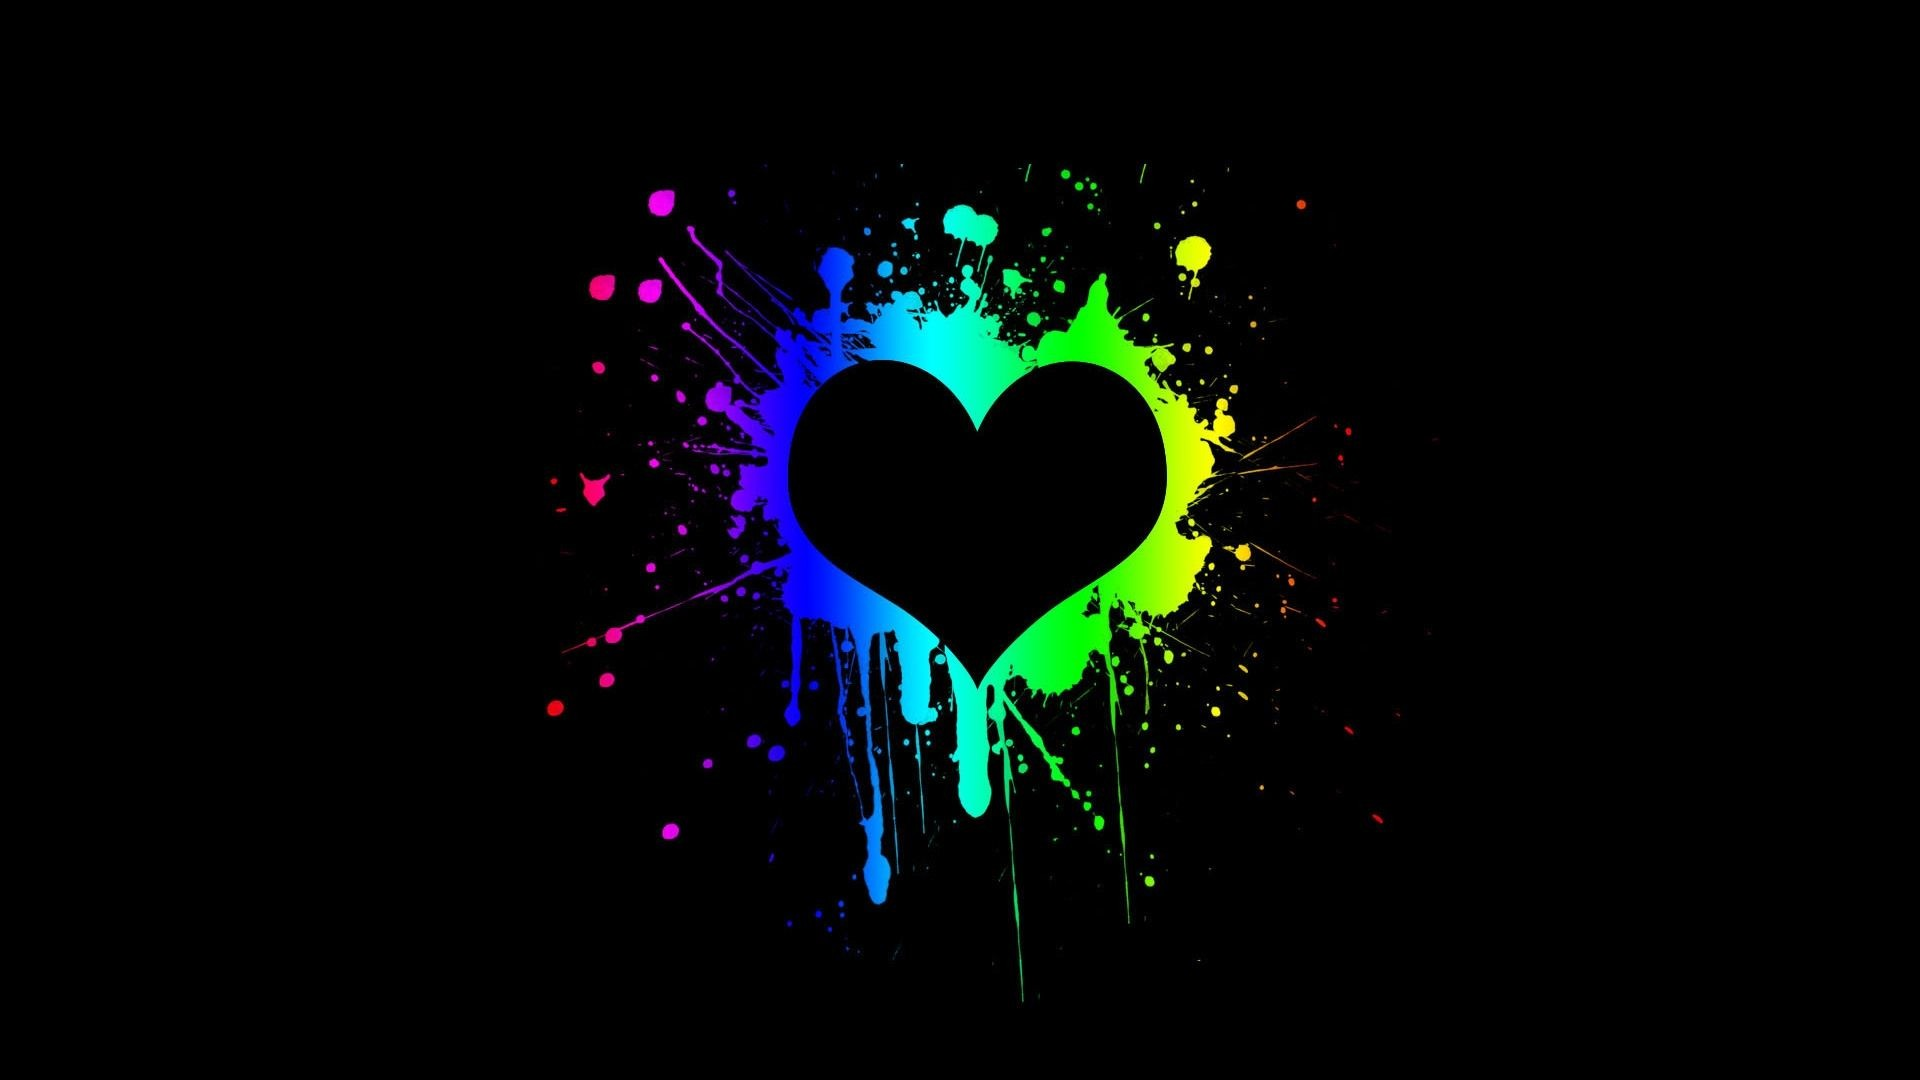 Abstract Love Wallpapers Hd Desktop And Mobile Backgrounds: Heart Wallpaper ·① Download Free Cool Full HD Wallpapers